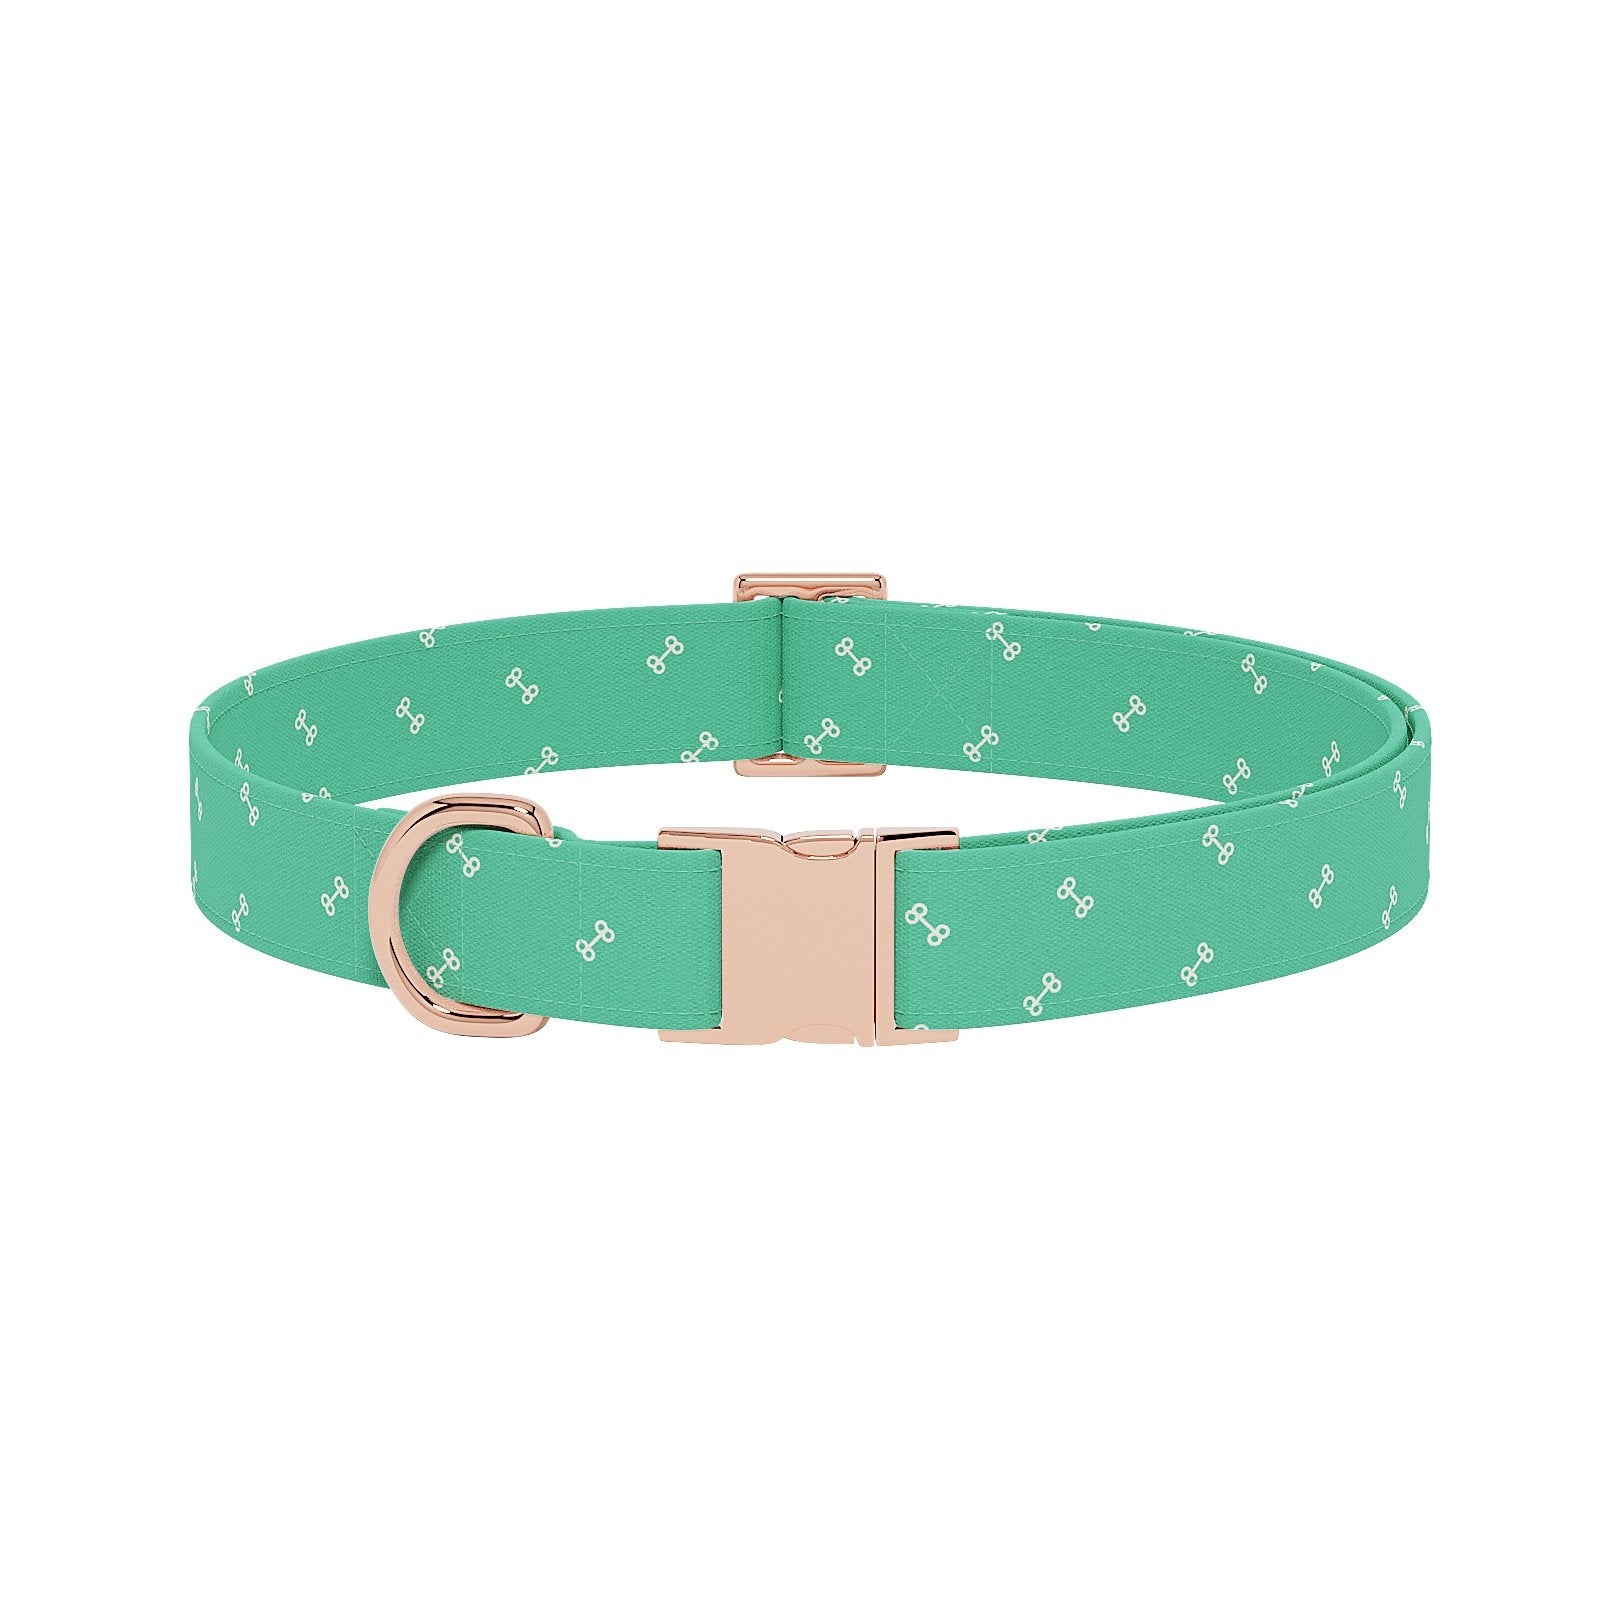 Bones Green Dog Collar